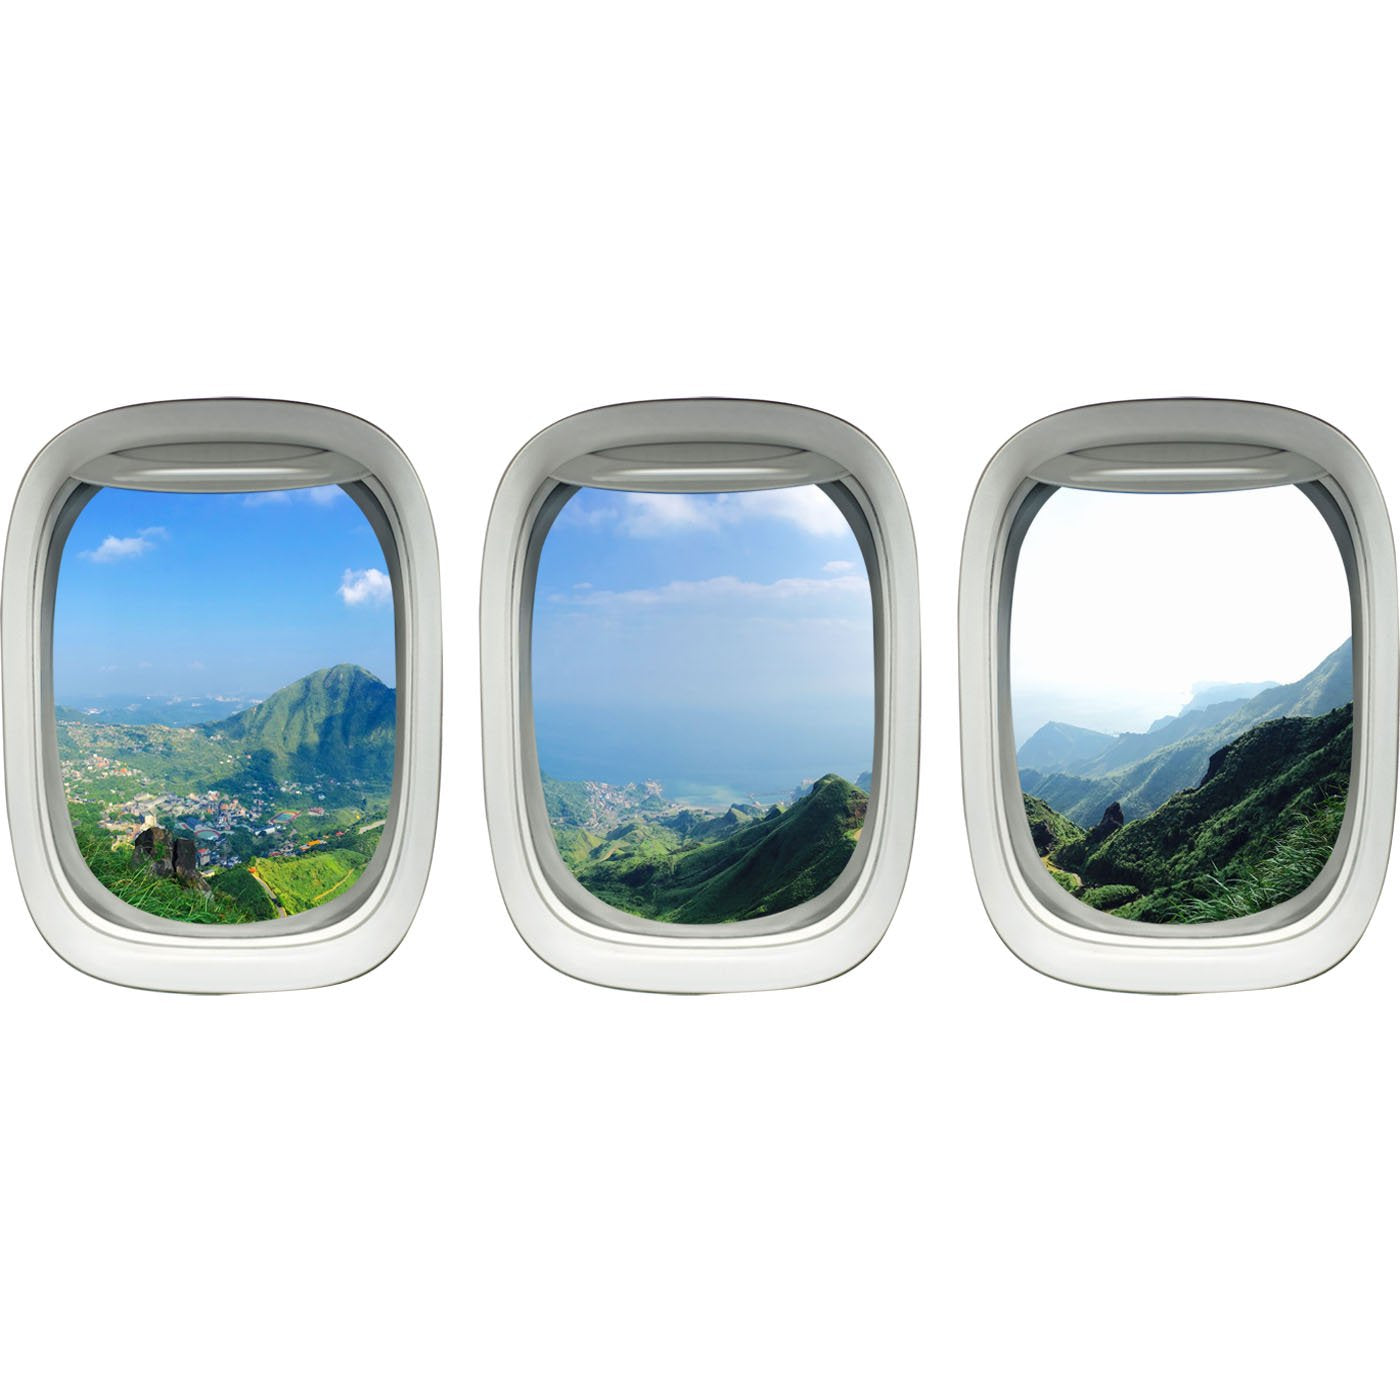 VWAQ Tropical Window Clings Decals - Nature Vinyl Wall Art Mural Decor, Airplane Window Sticker -PPW43 - VWAQ Vinyl Wall Art Quotes and Prints